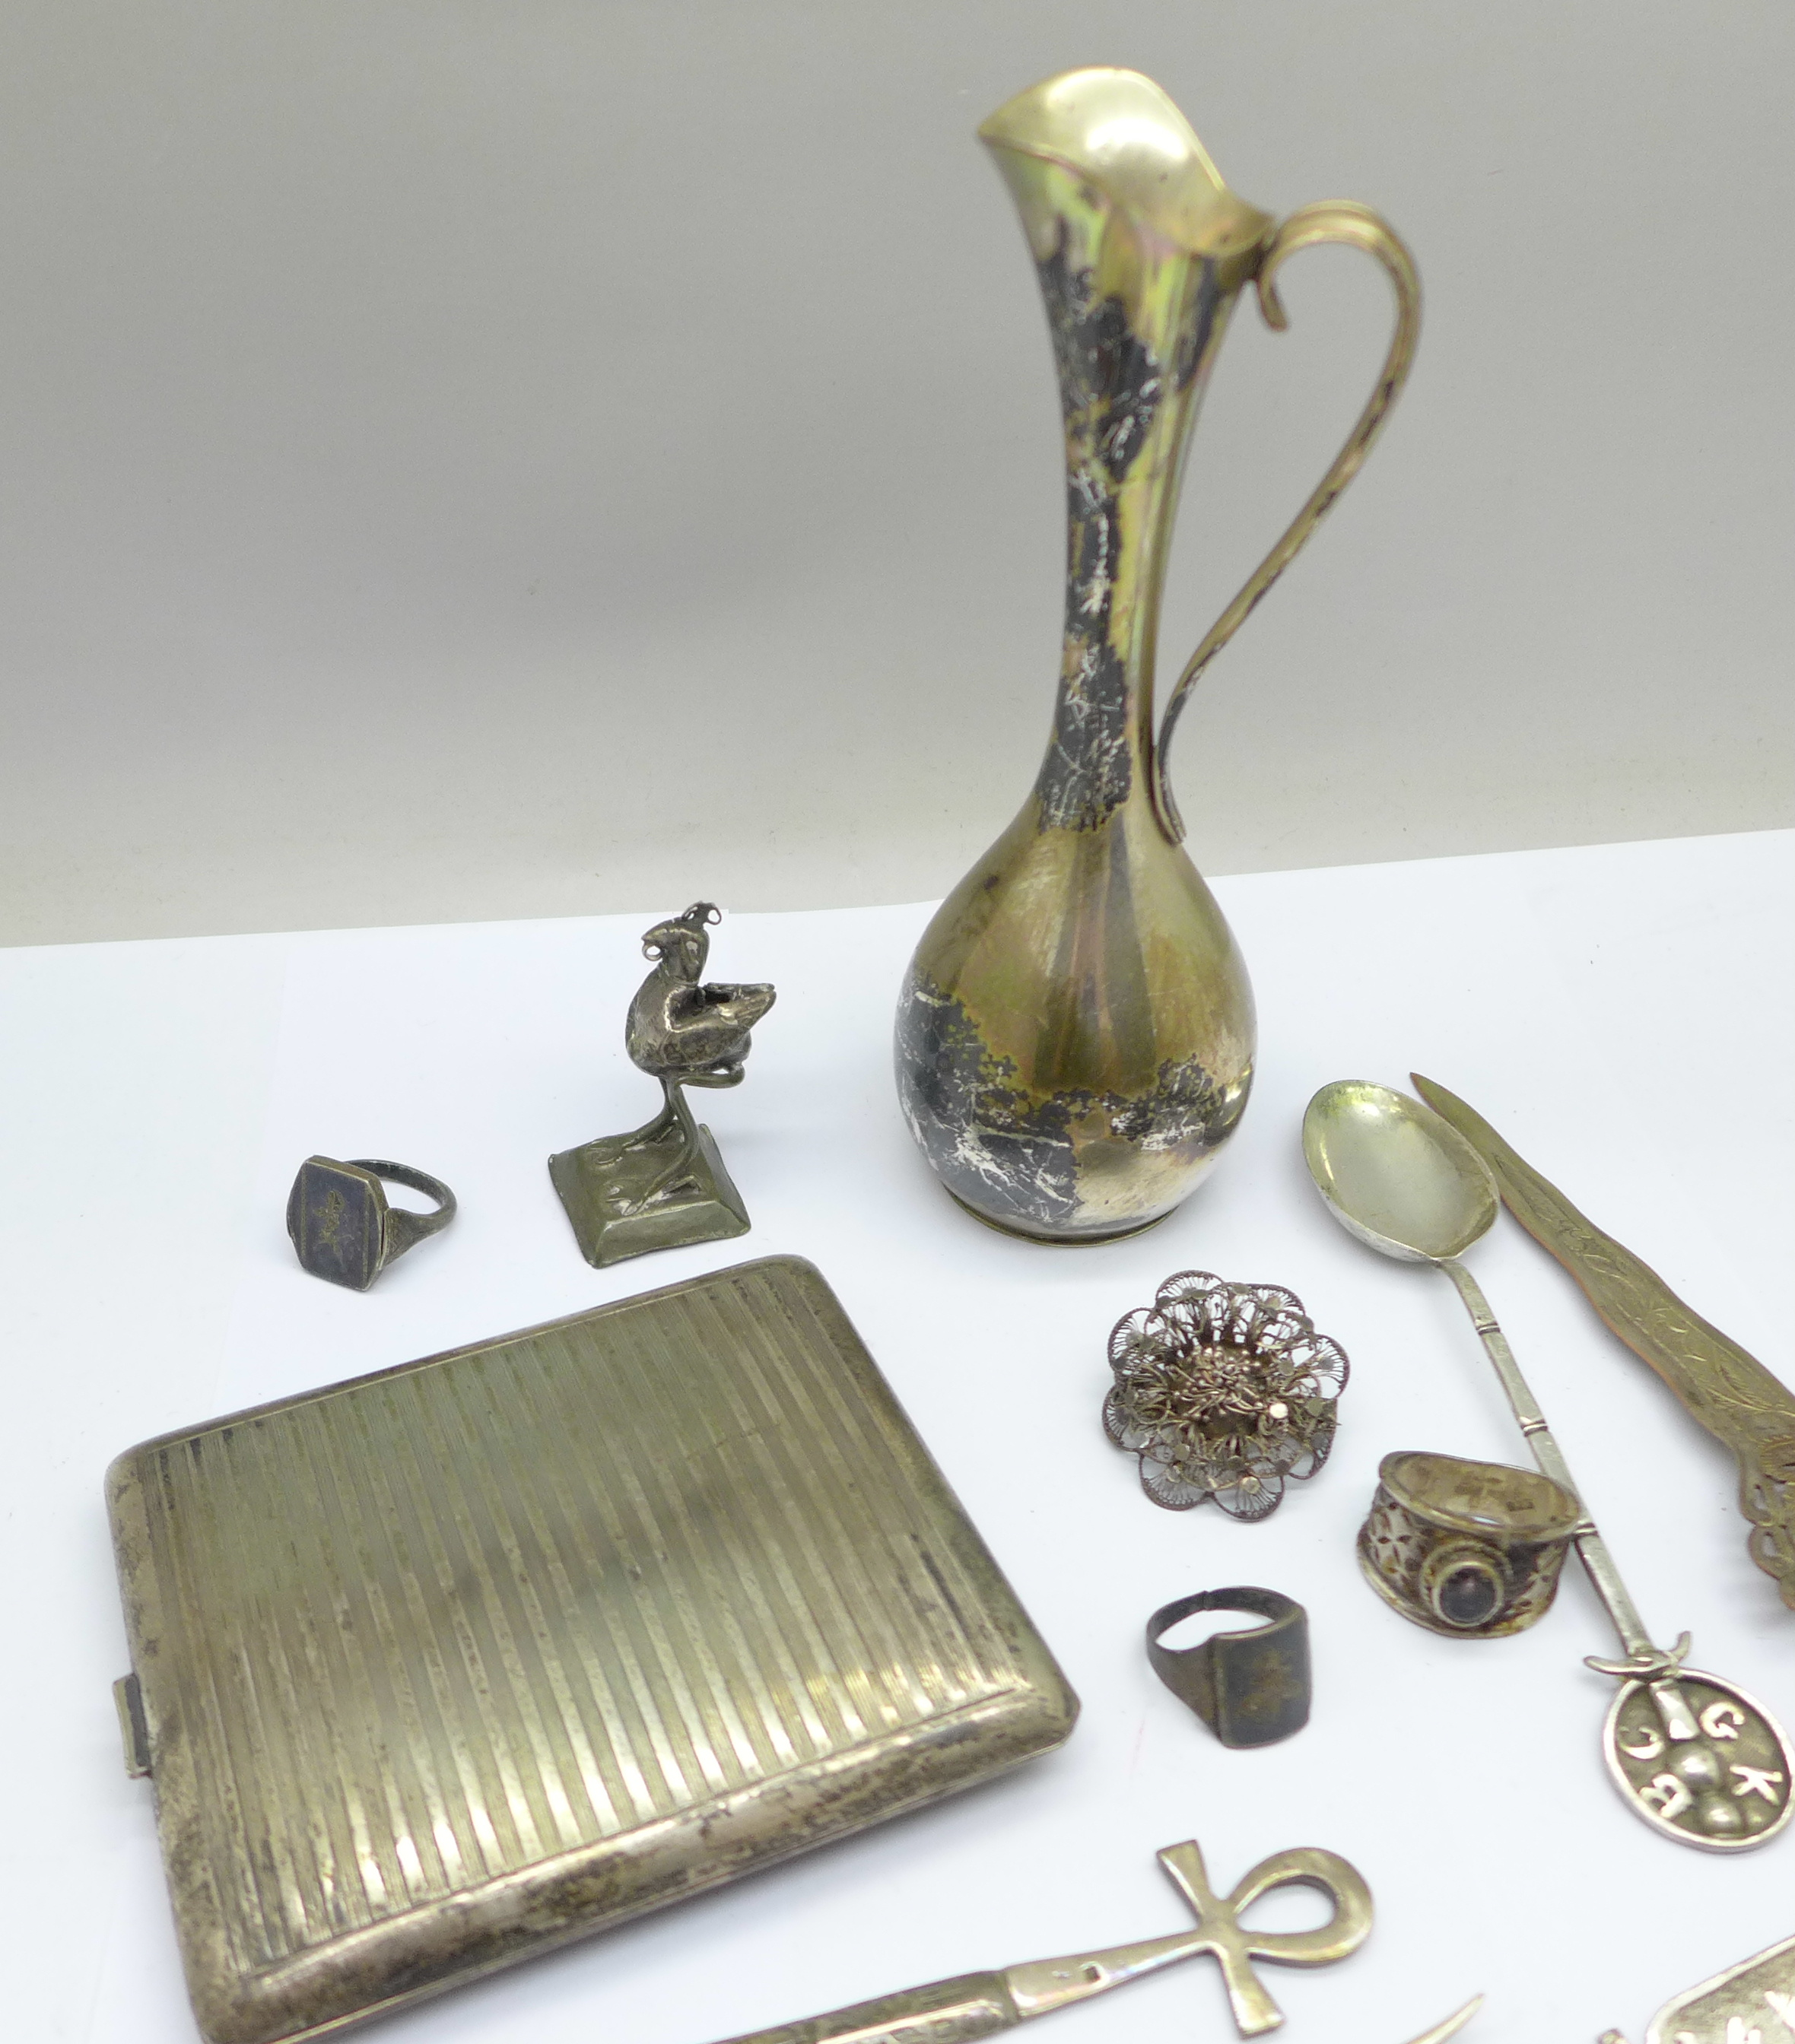 A collection of continental silver including a cigarette case, jug, rings, spoon, etc., 280g - Image 6 of 7